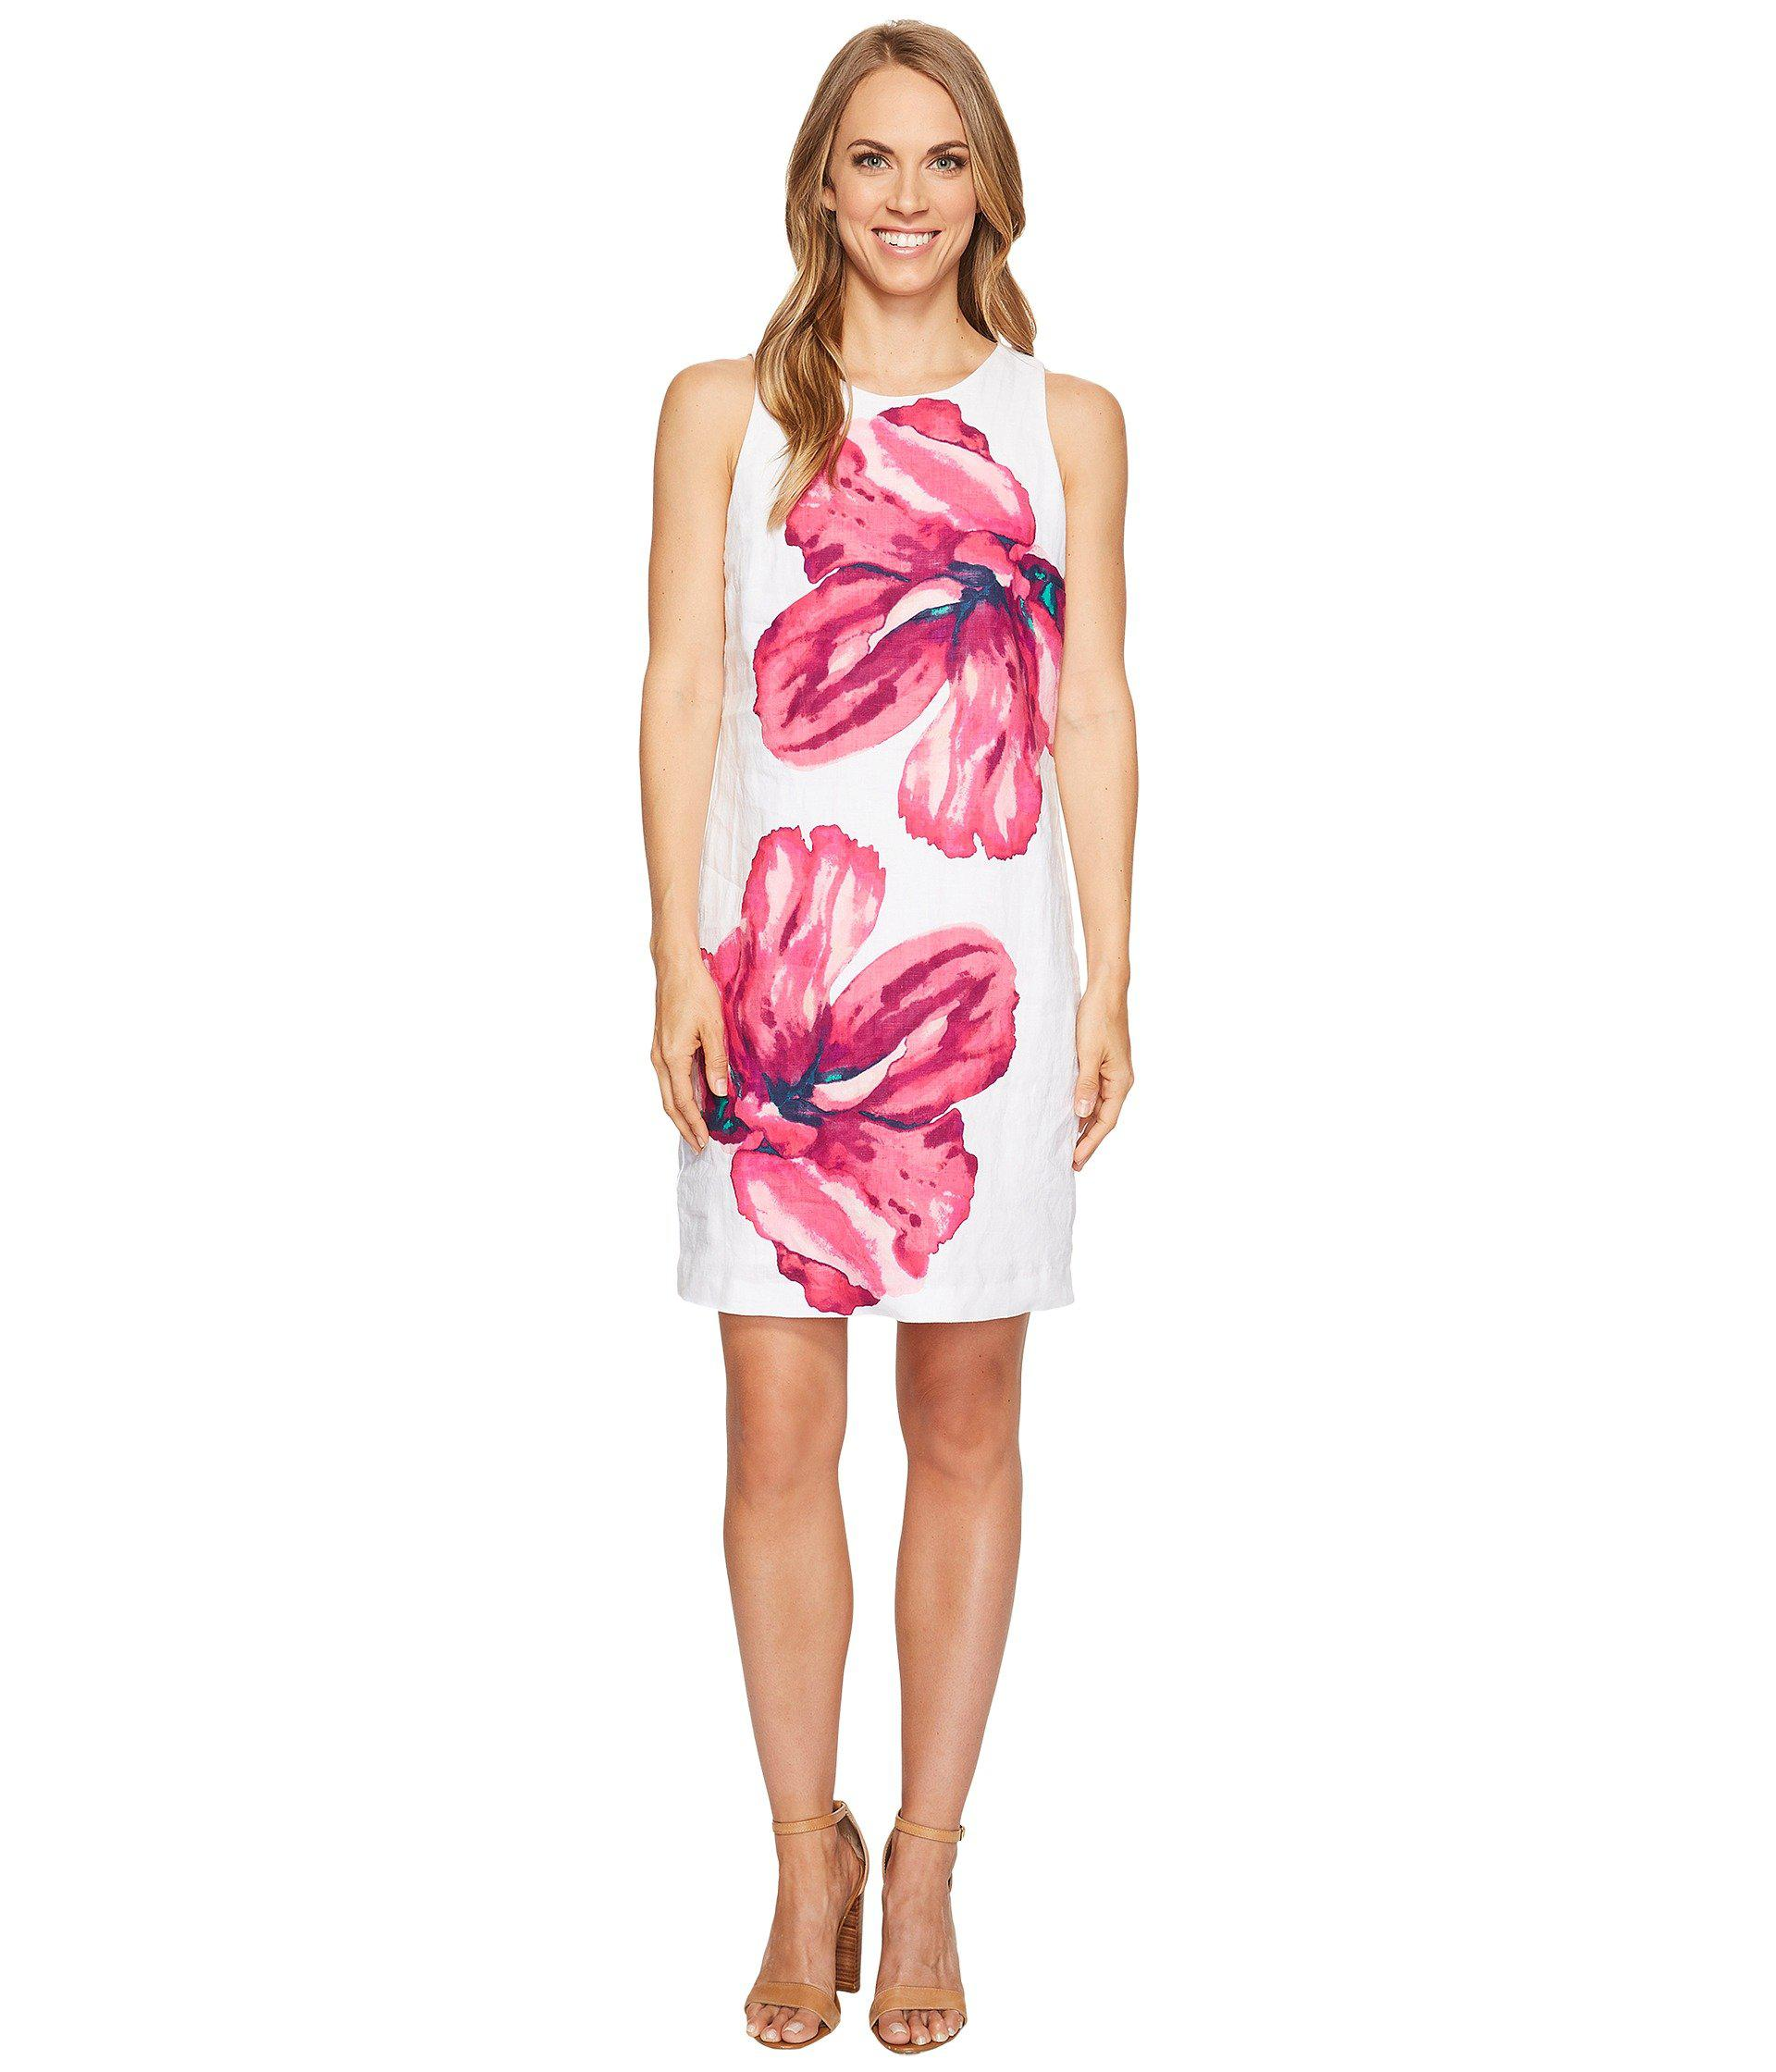 b7e4090205aa Lyst - Tommy Bahama Kavala Blossoms Short Dress in White - Save 58%